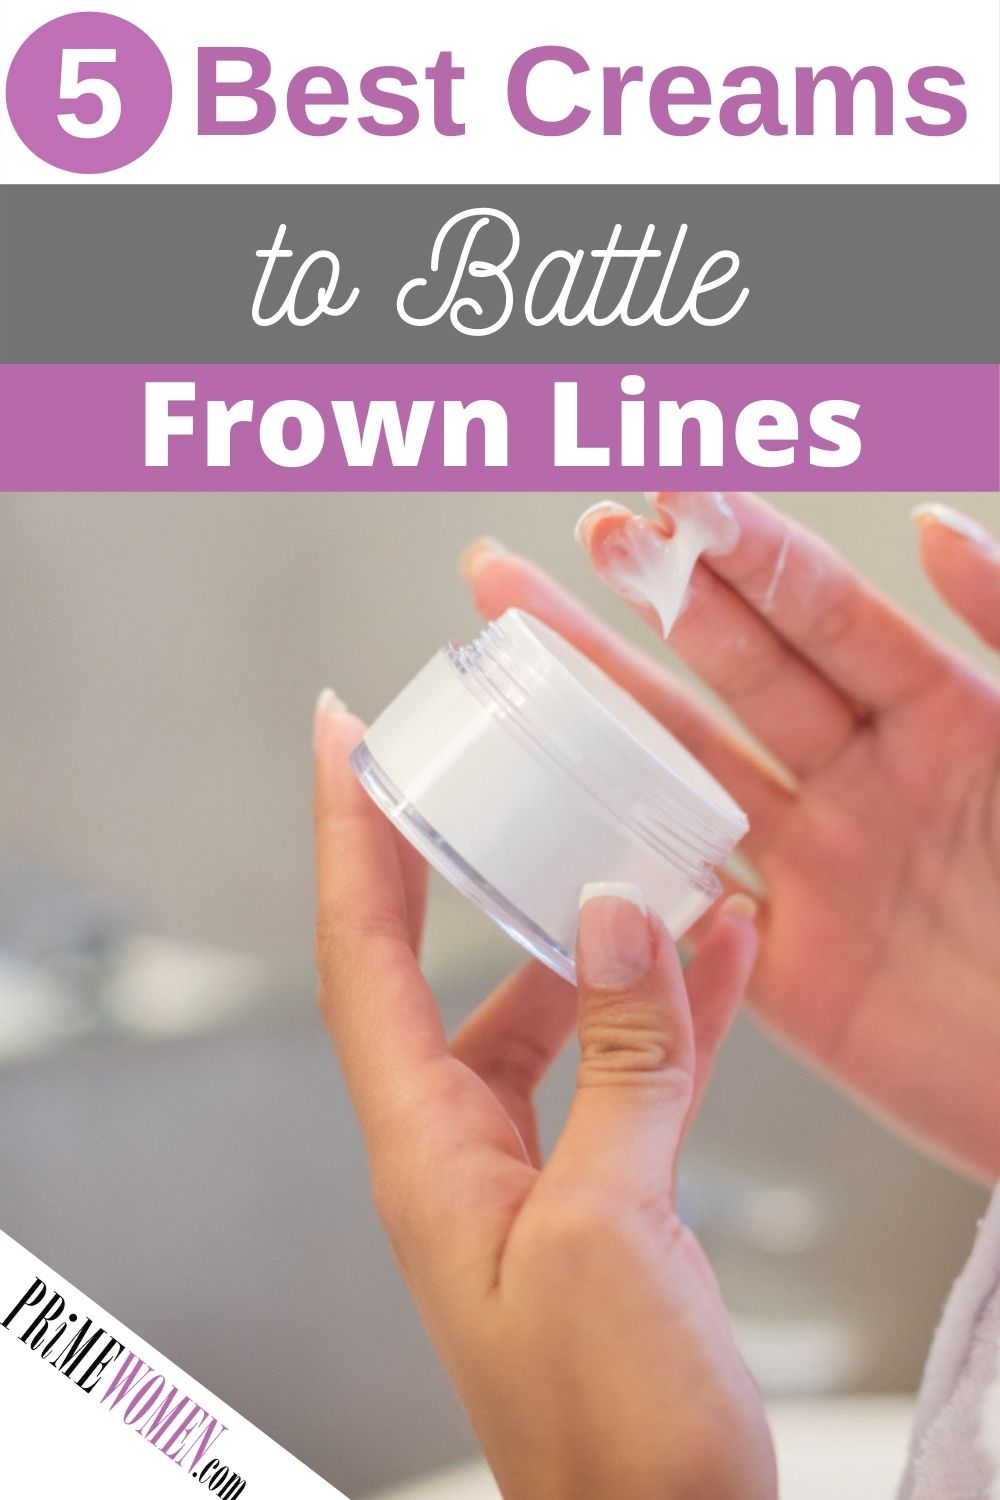 5 Best Creams to battle frown lines